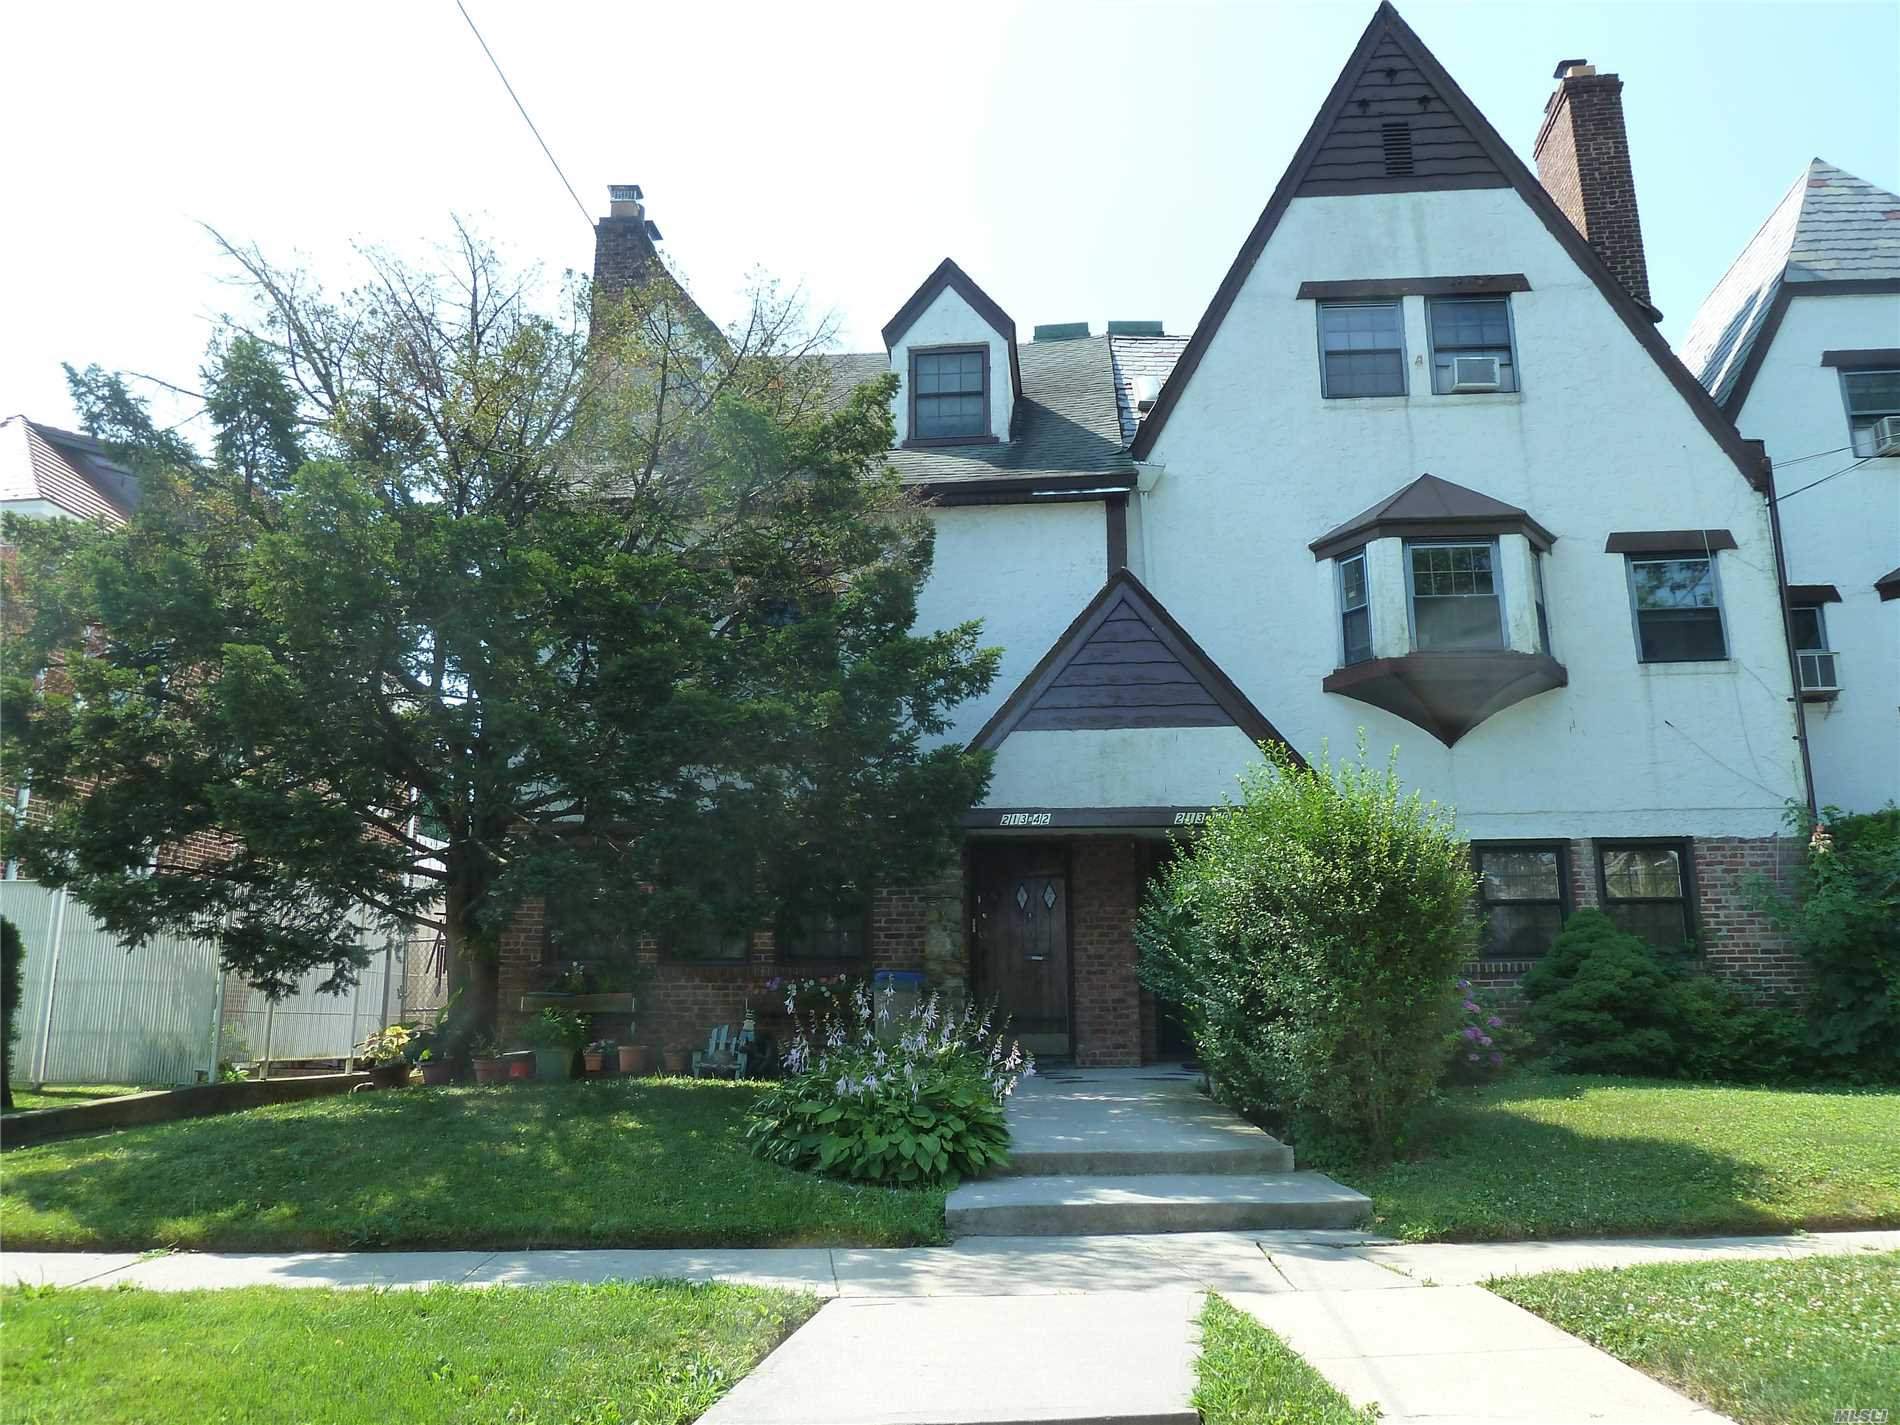 Beautiful 2 Family Tudor House Featuring 3 Bedrooms, 2.5 Bathrooms, Finished Basement And 2 Car Garage. Lot Is 2761 Sqft. It Is Situated Near Mass Transit, Major Highways, Shops And All. Excellent Condition. A Must See!